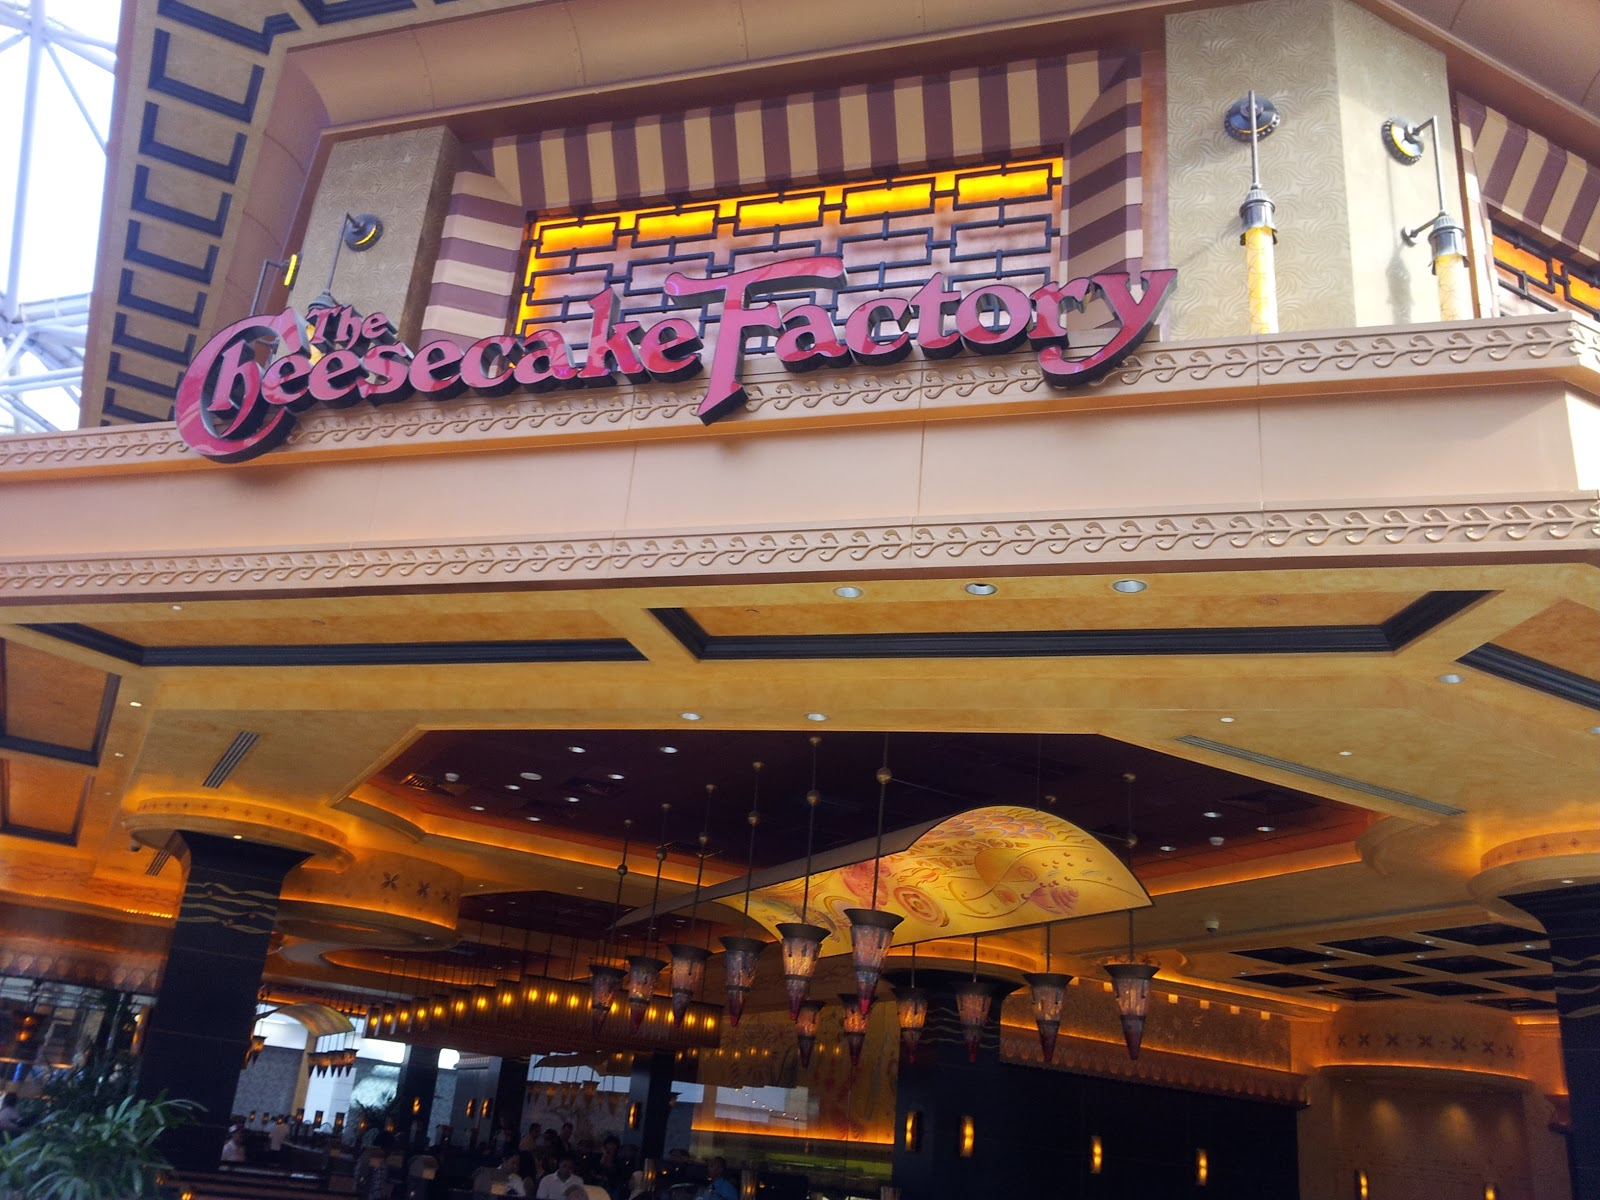 Affordable home decor » cheesecake factory victoria gardens | Home ...